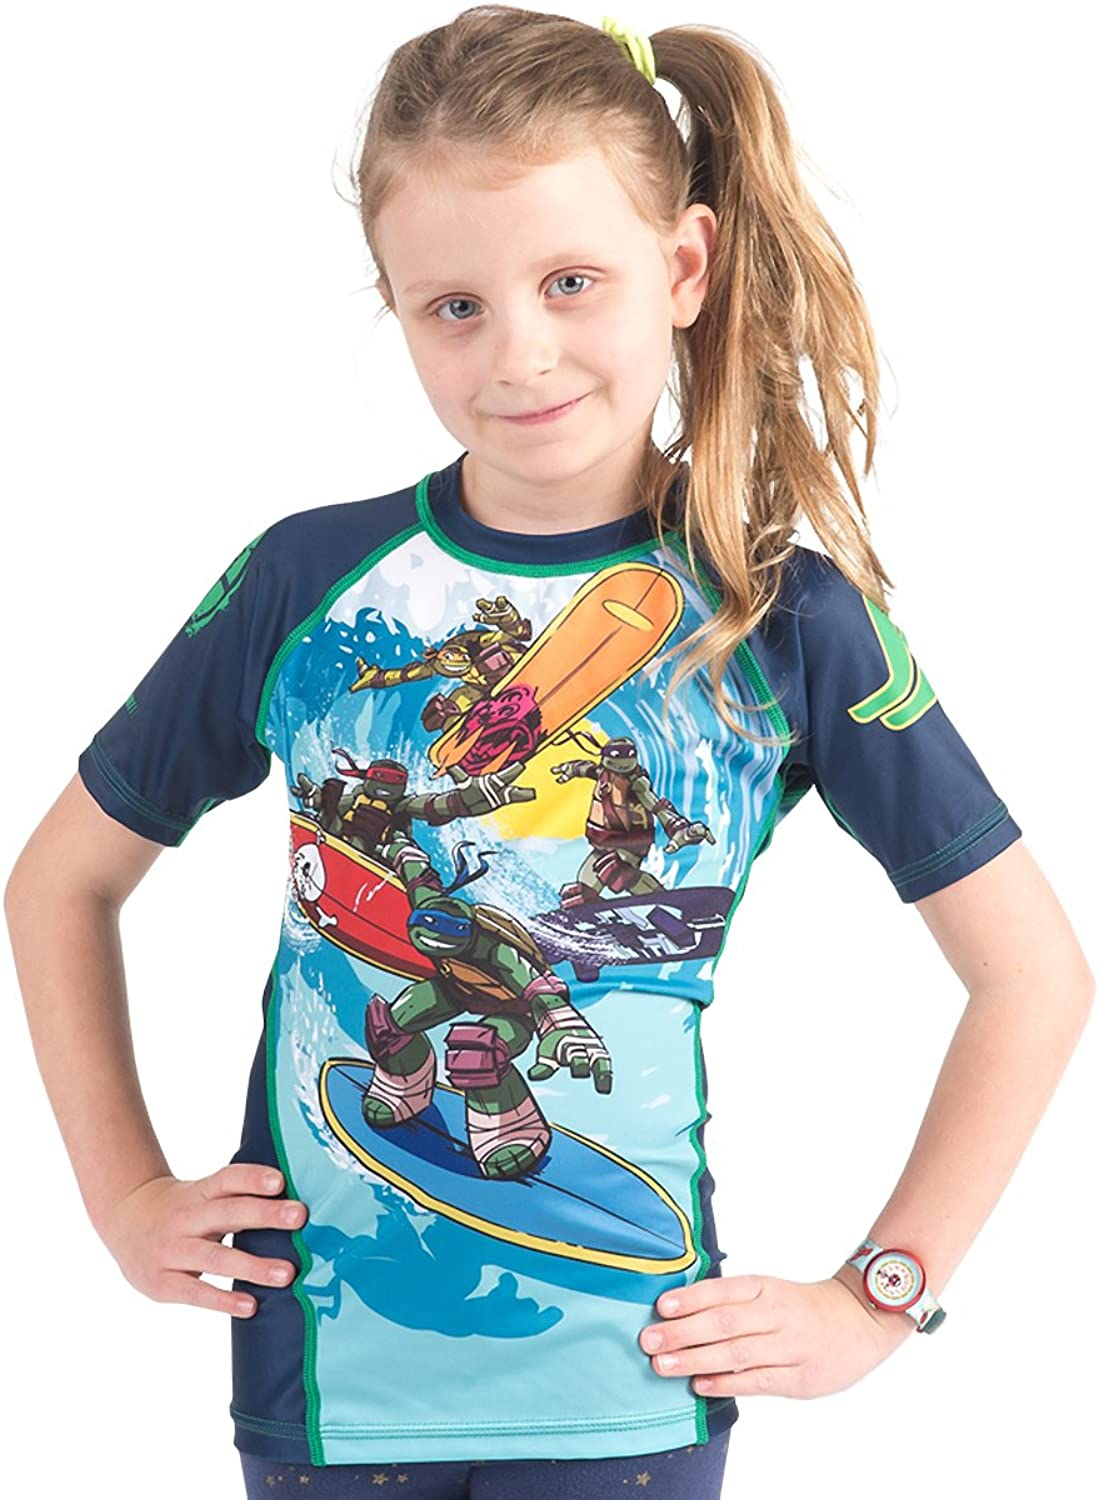 TMNT Kinder tmnt004 Kanalisation Surfin Rash Rash Rash Guard B01I21PS46  Einfach 74e076